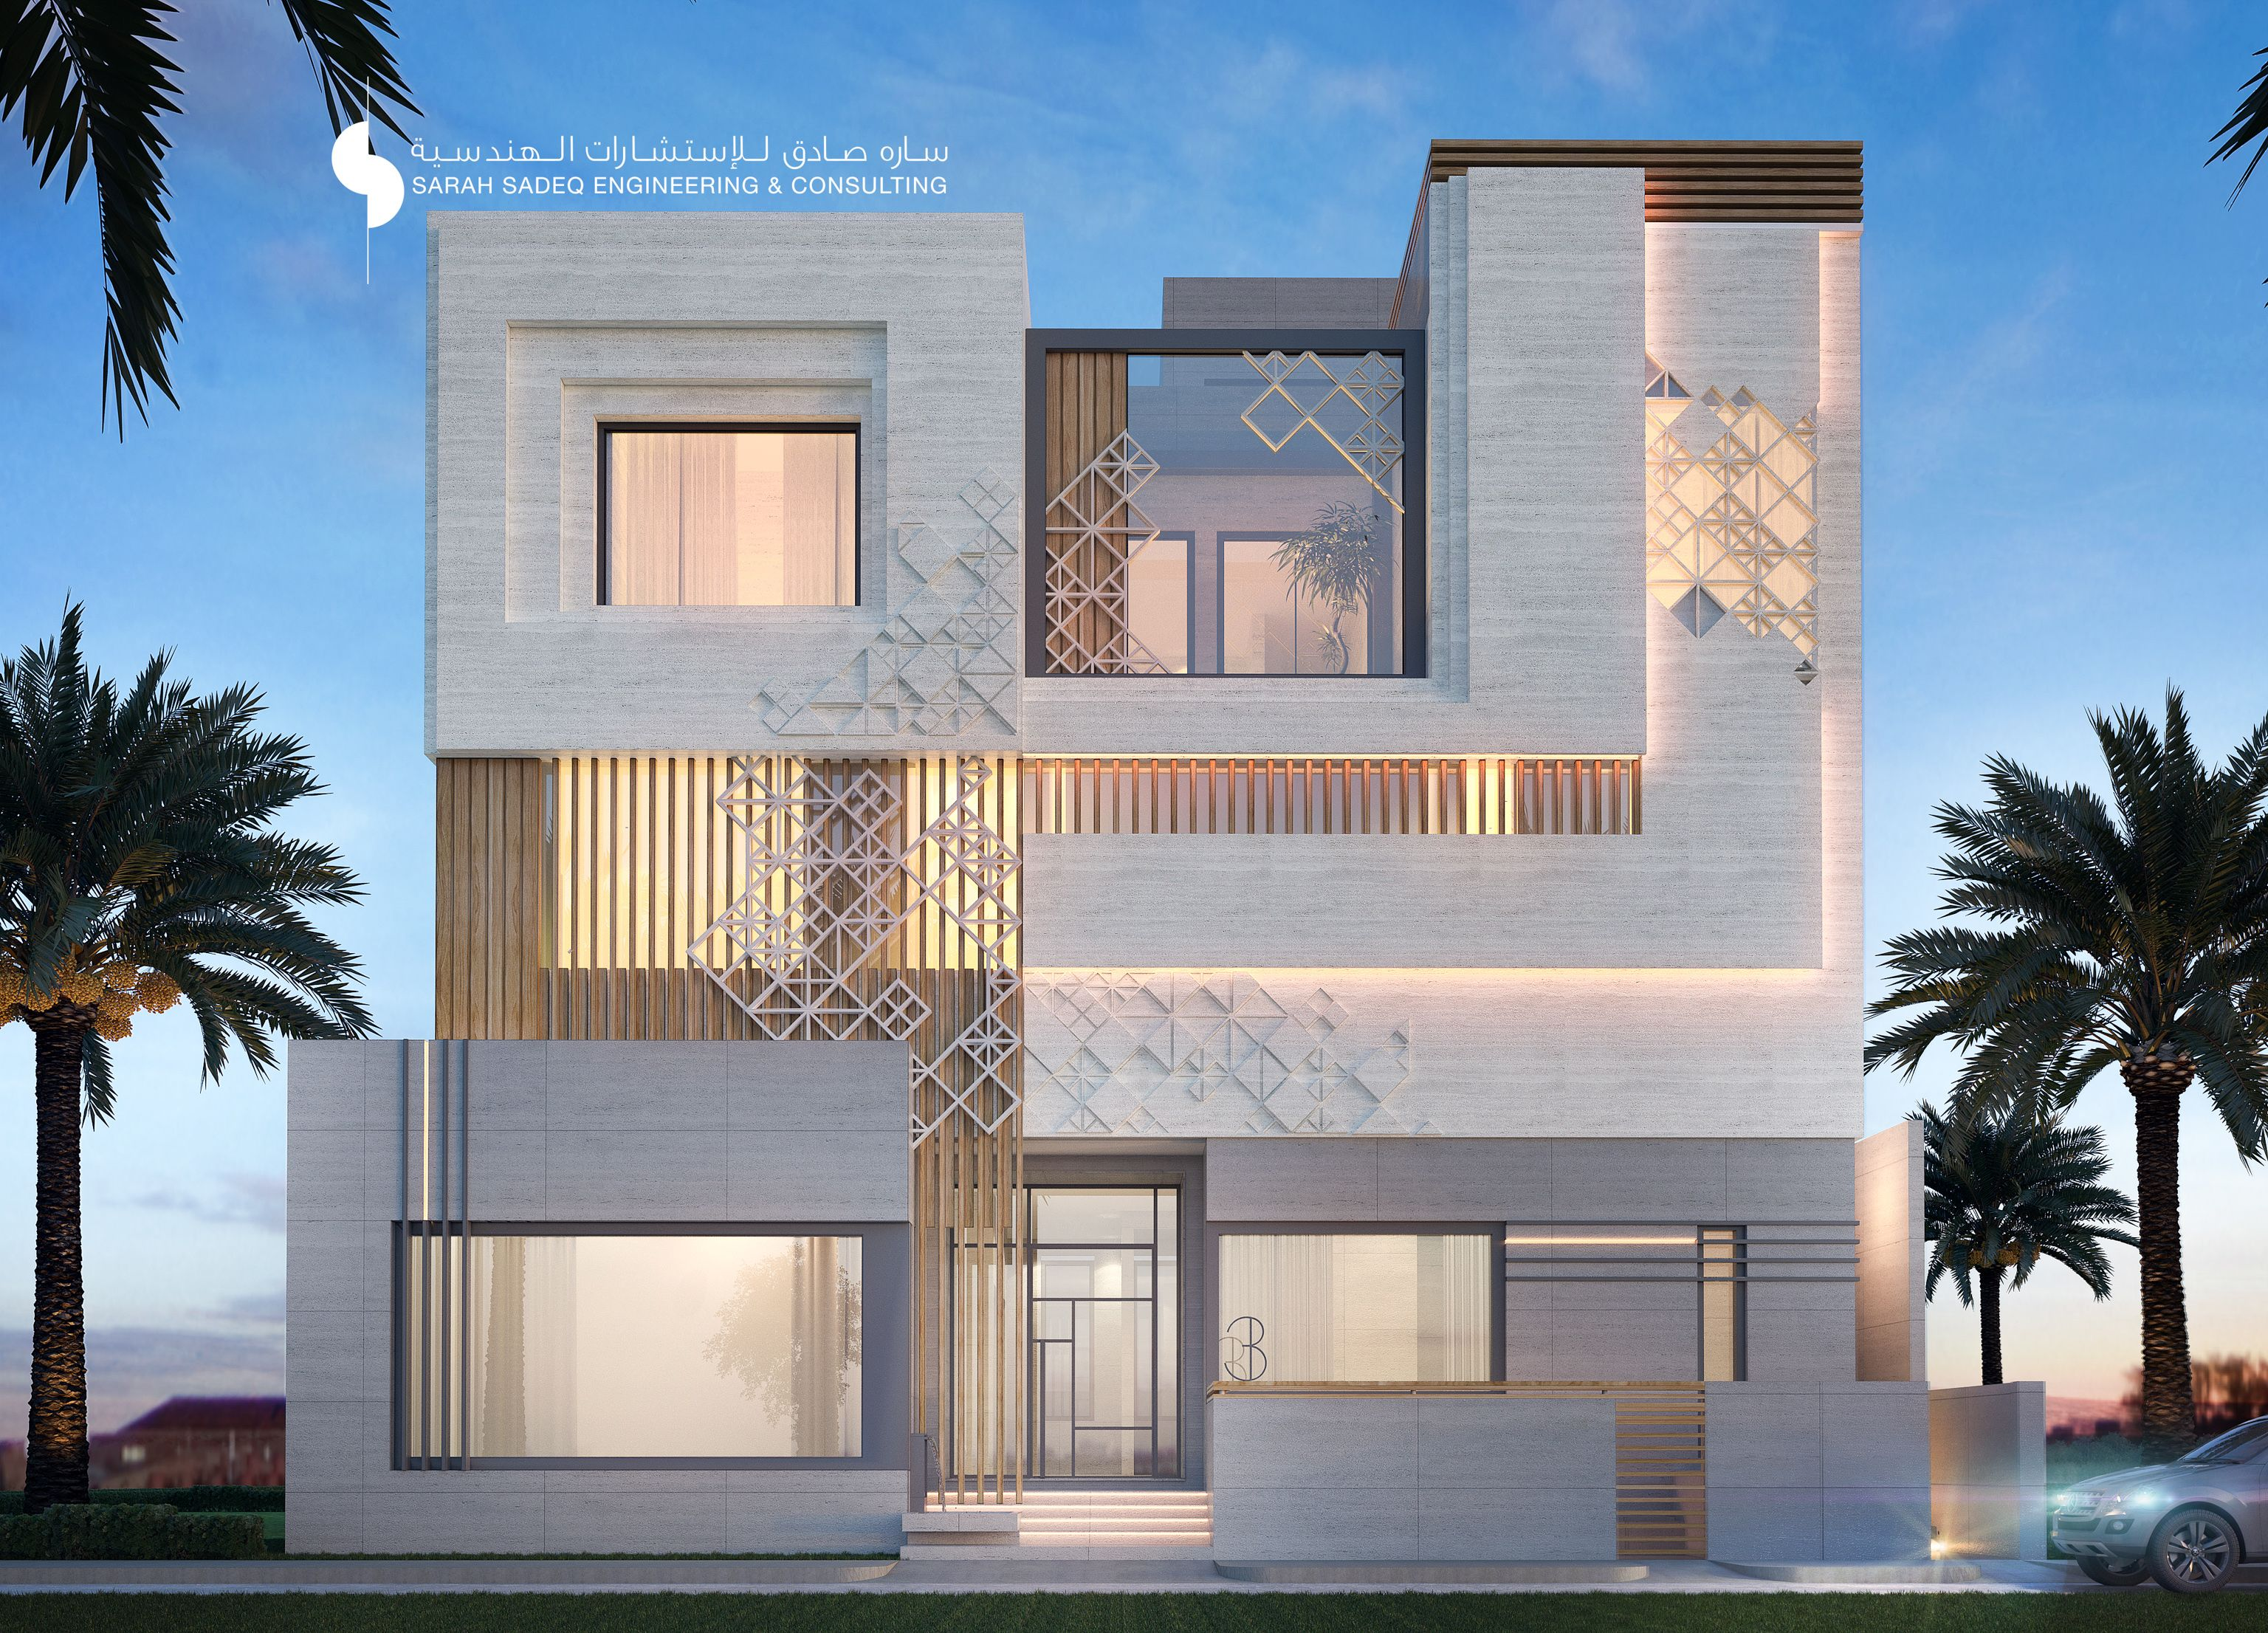 Private villa kuwait 400 m by sarah sadeq architects for Modern villa architecture design